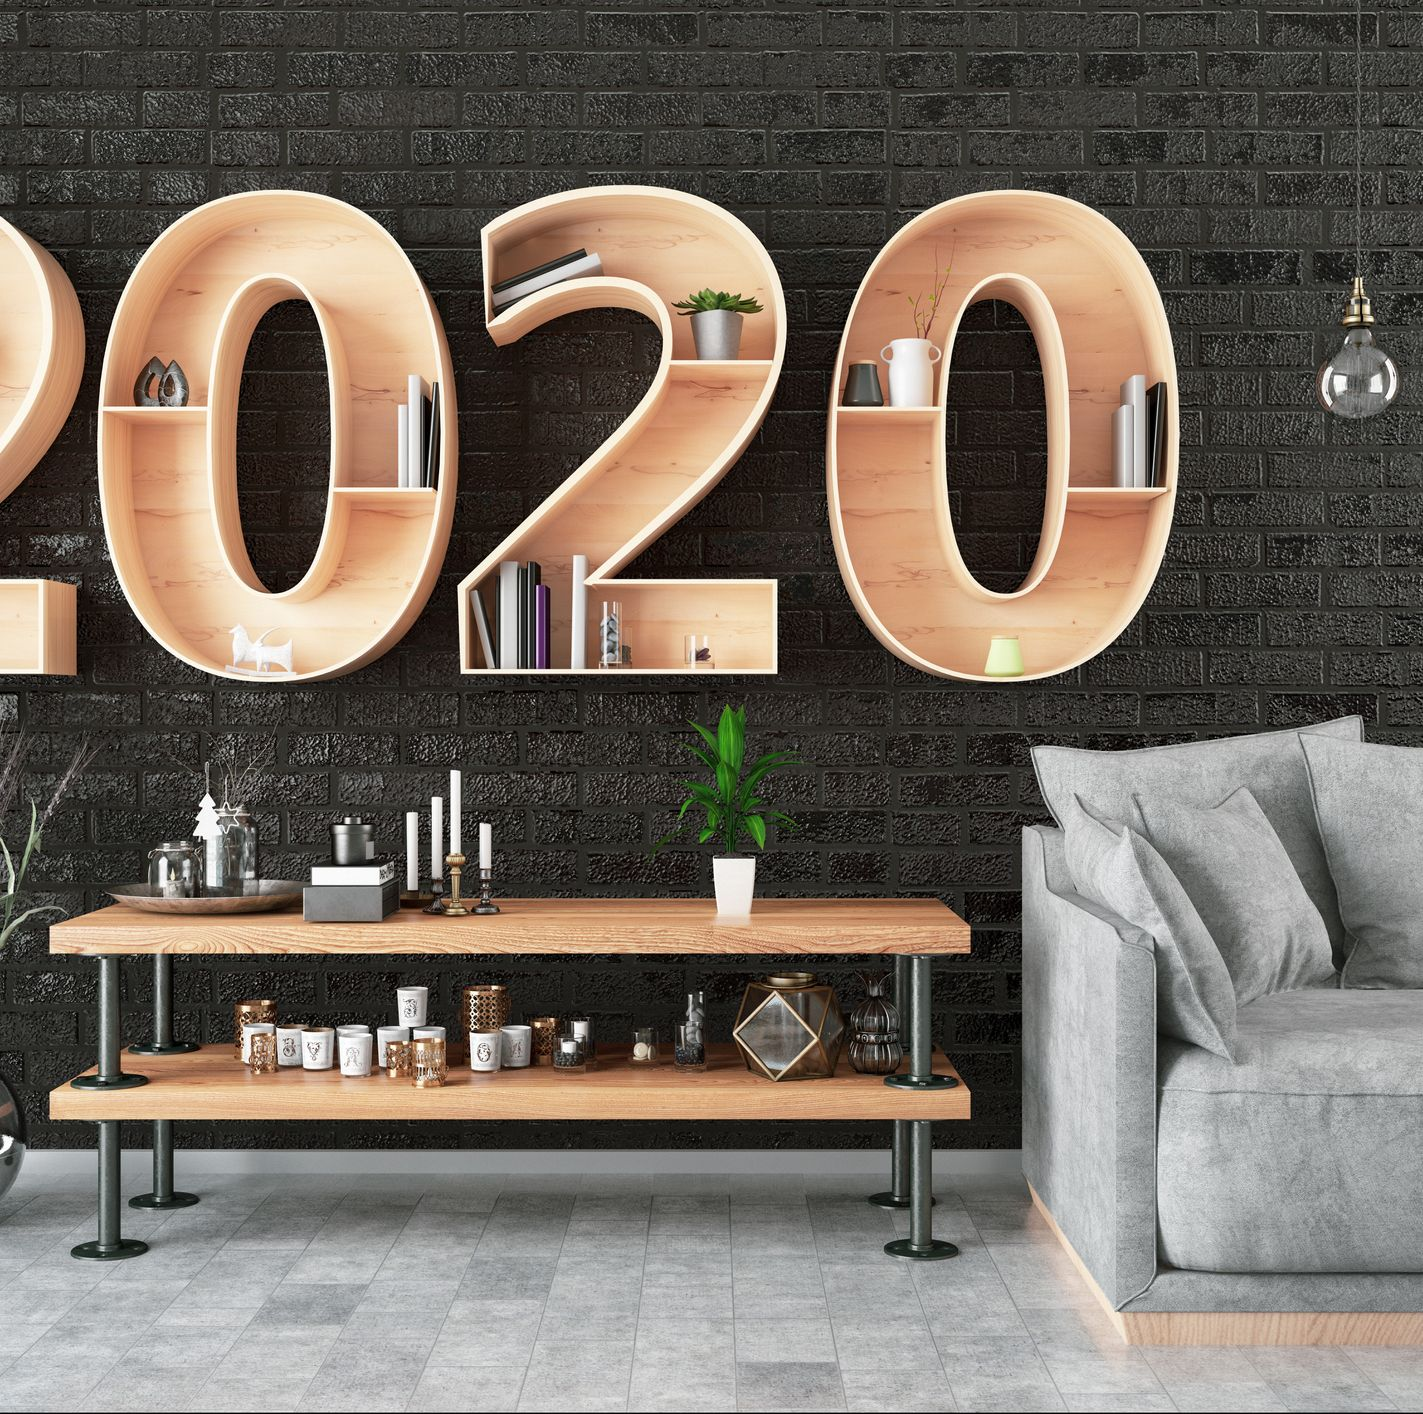 Best Kitchen Paint Colors For 2019 2020 Planner Free